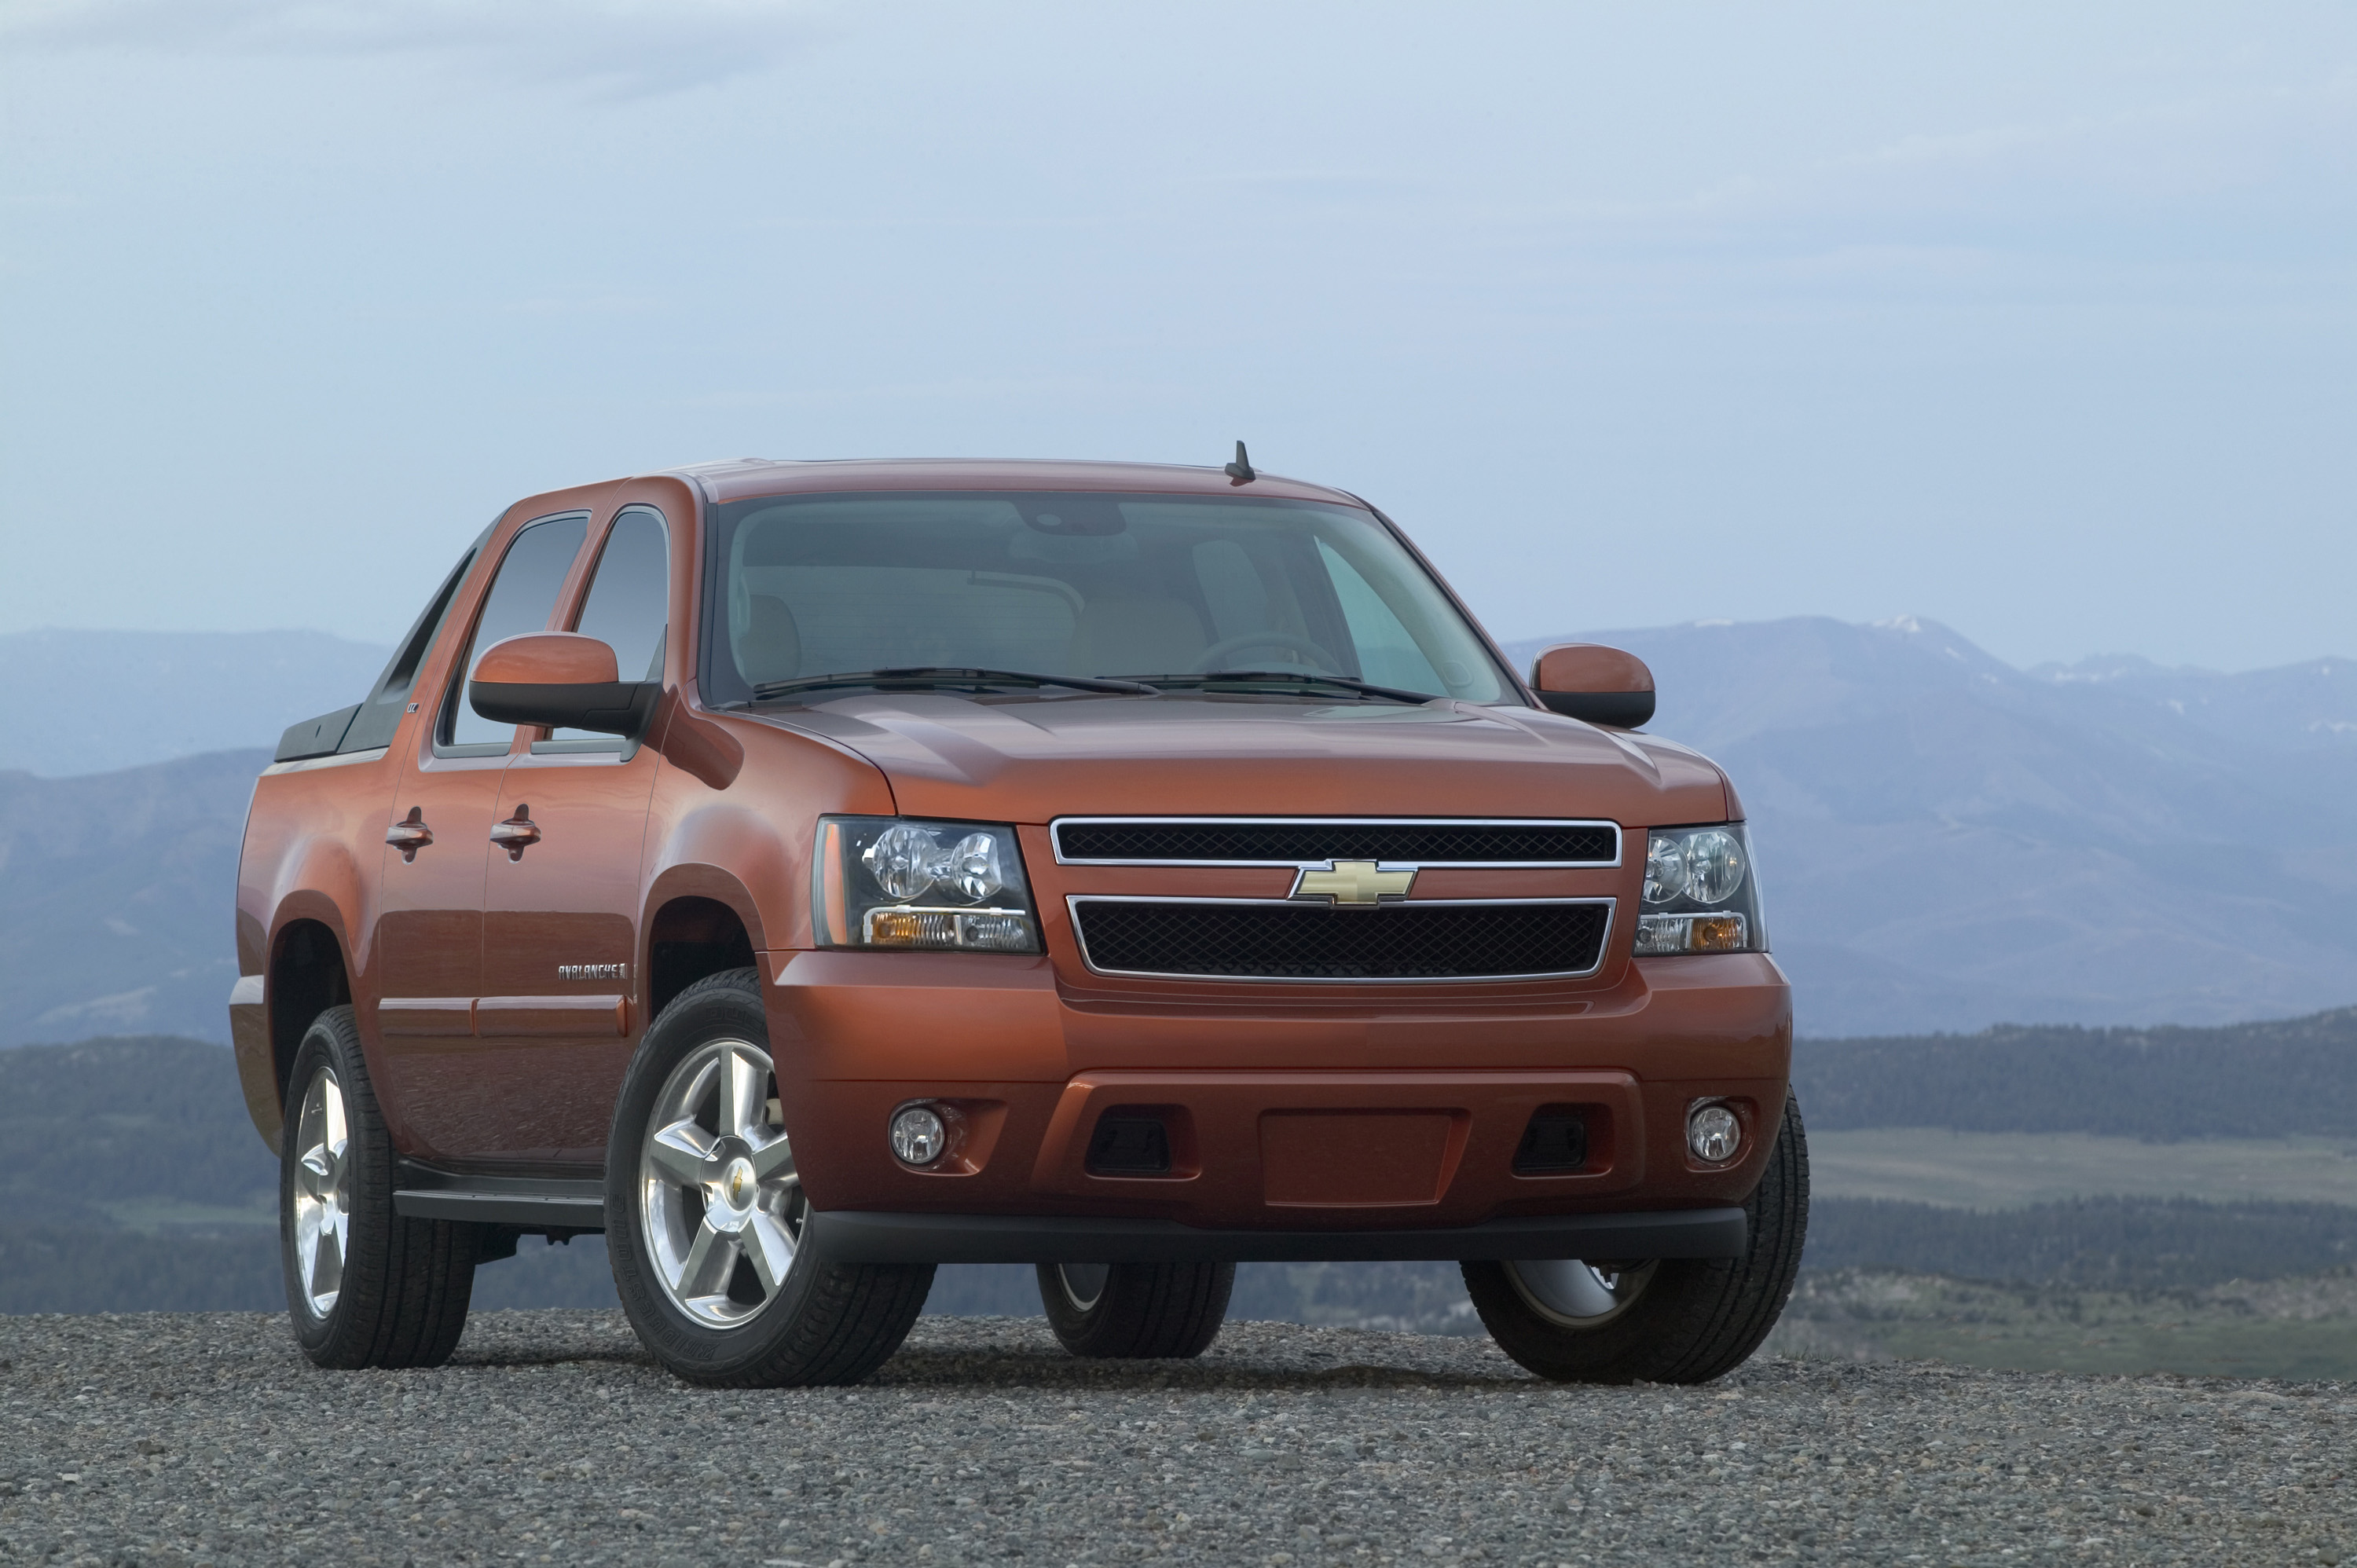 2007 chevrolet avalanche review top speed. Black Bedroom Furniture Sets. Home Design Ideas